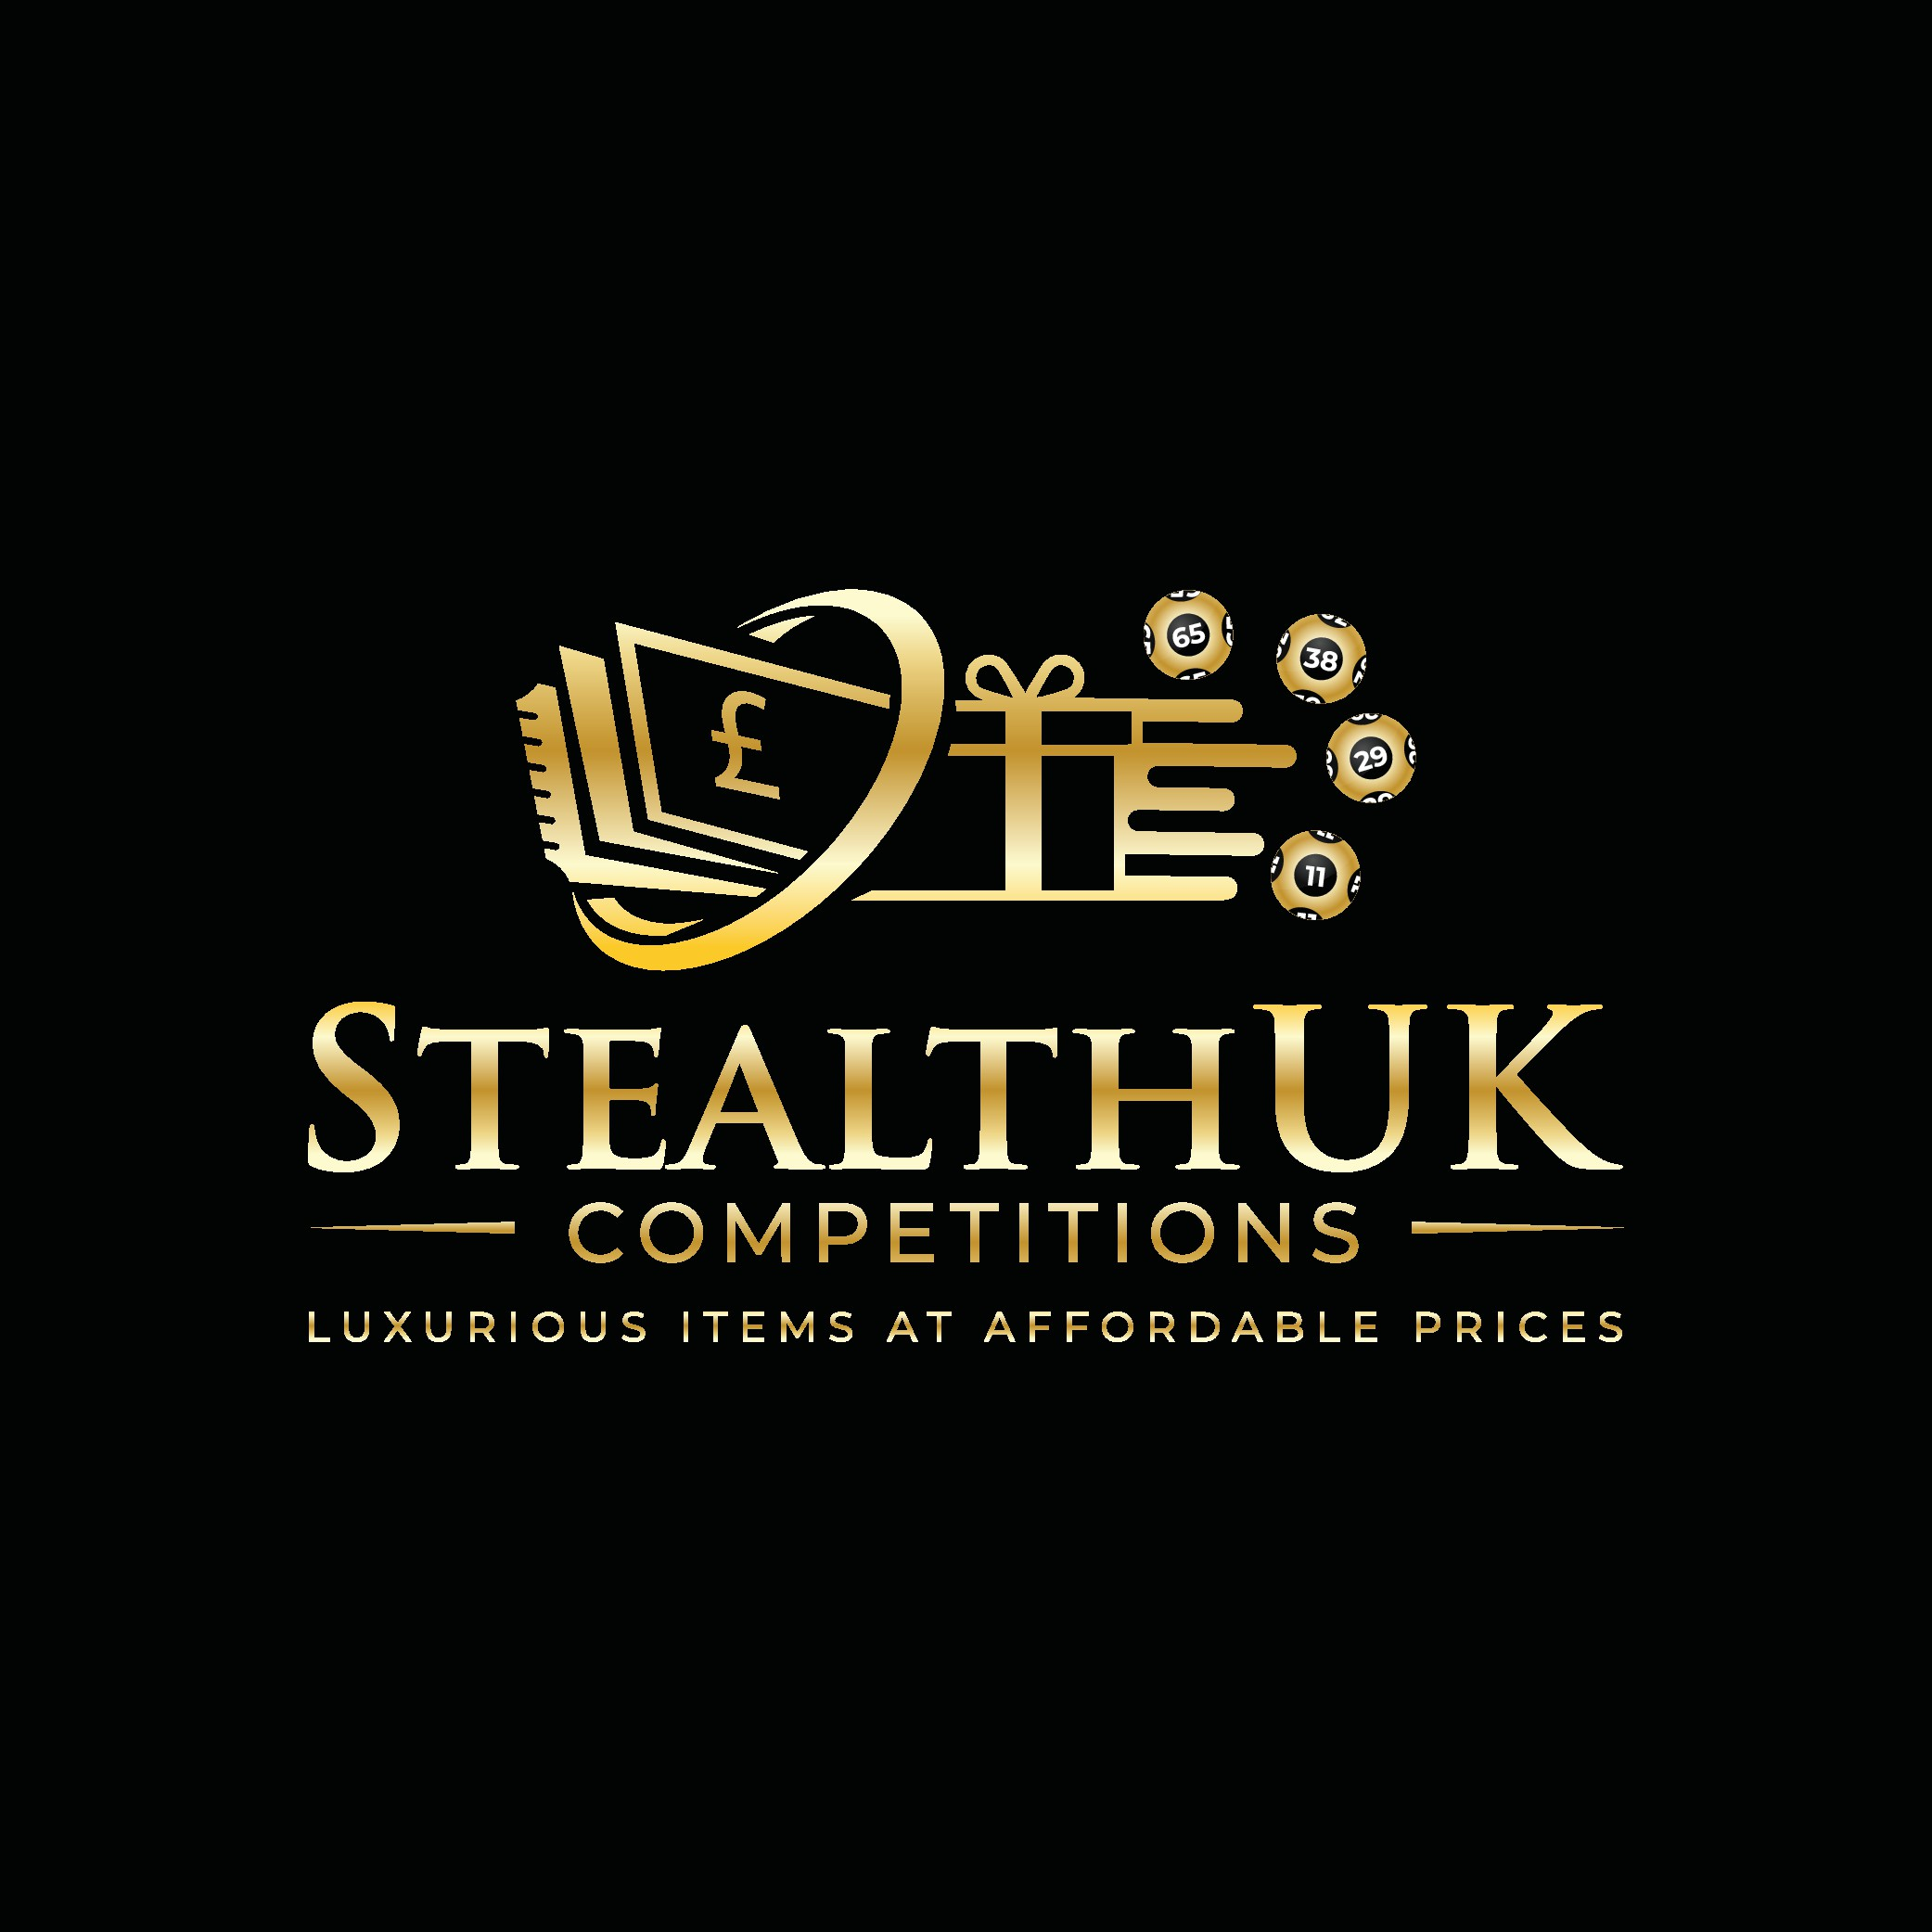 Stealthy black and gold logo needed for our luxury item lottery competition. Lottery balls in black and white